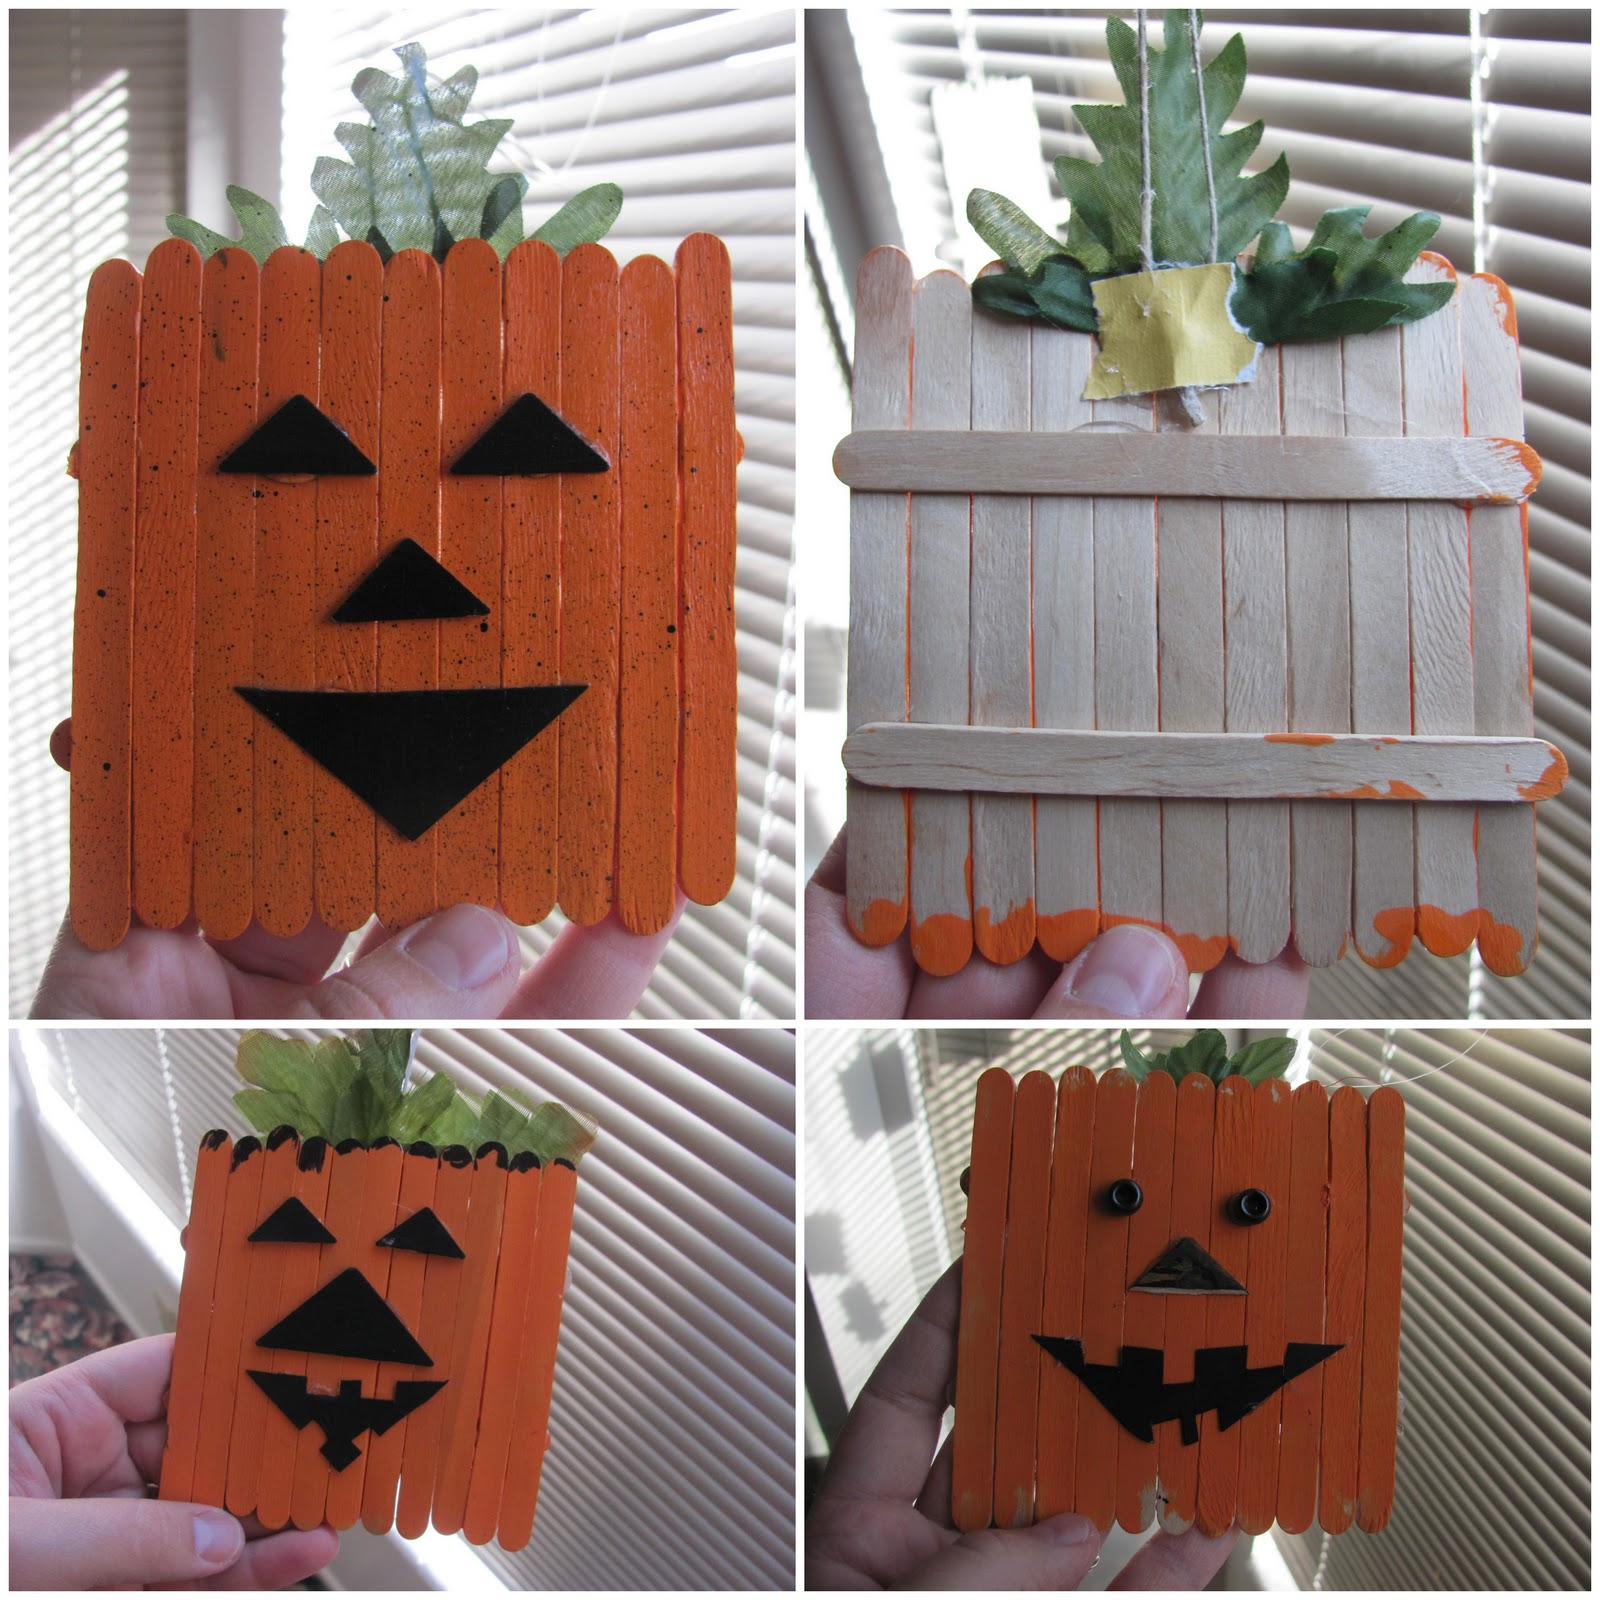 Easy At Home Halloween Decorations: Hanging By A Silver Lining: Easy Halloween Decorations